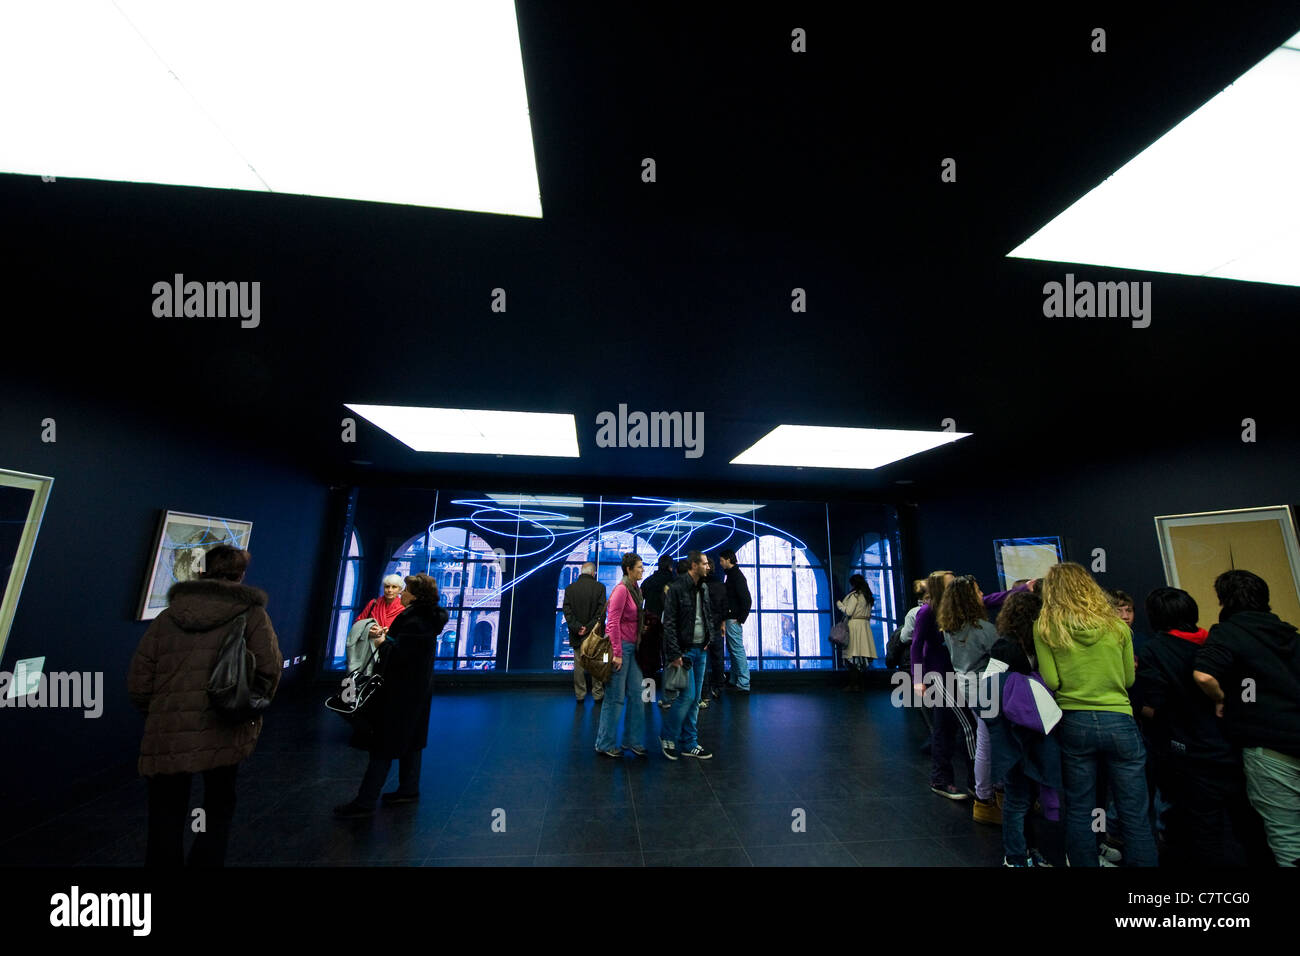 Italy, Lombardy, Milan, the Museo del Novecento - Stock Image